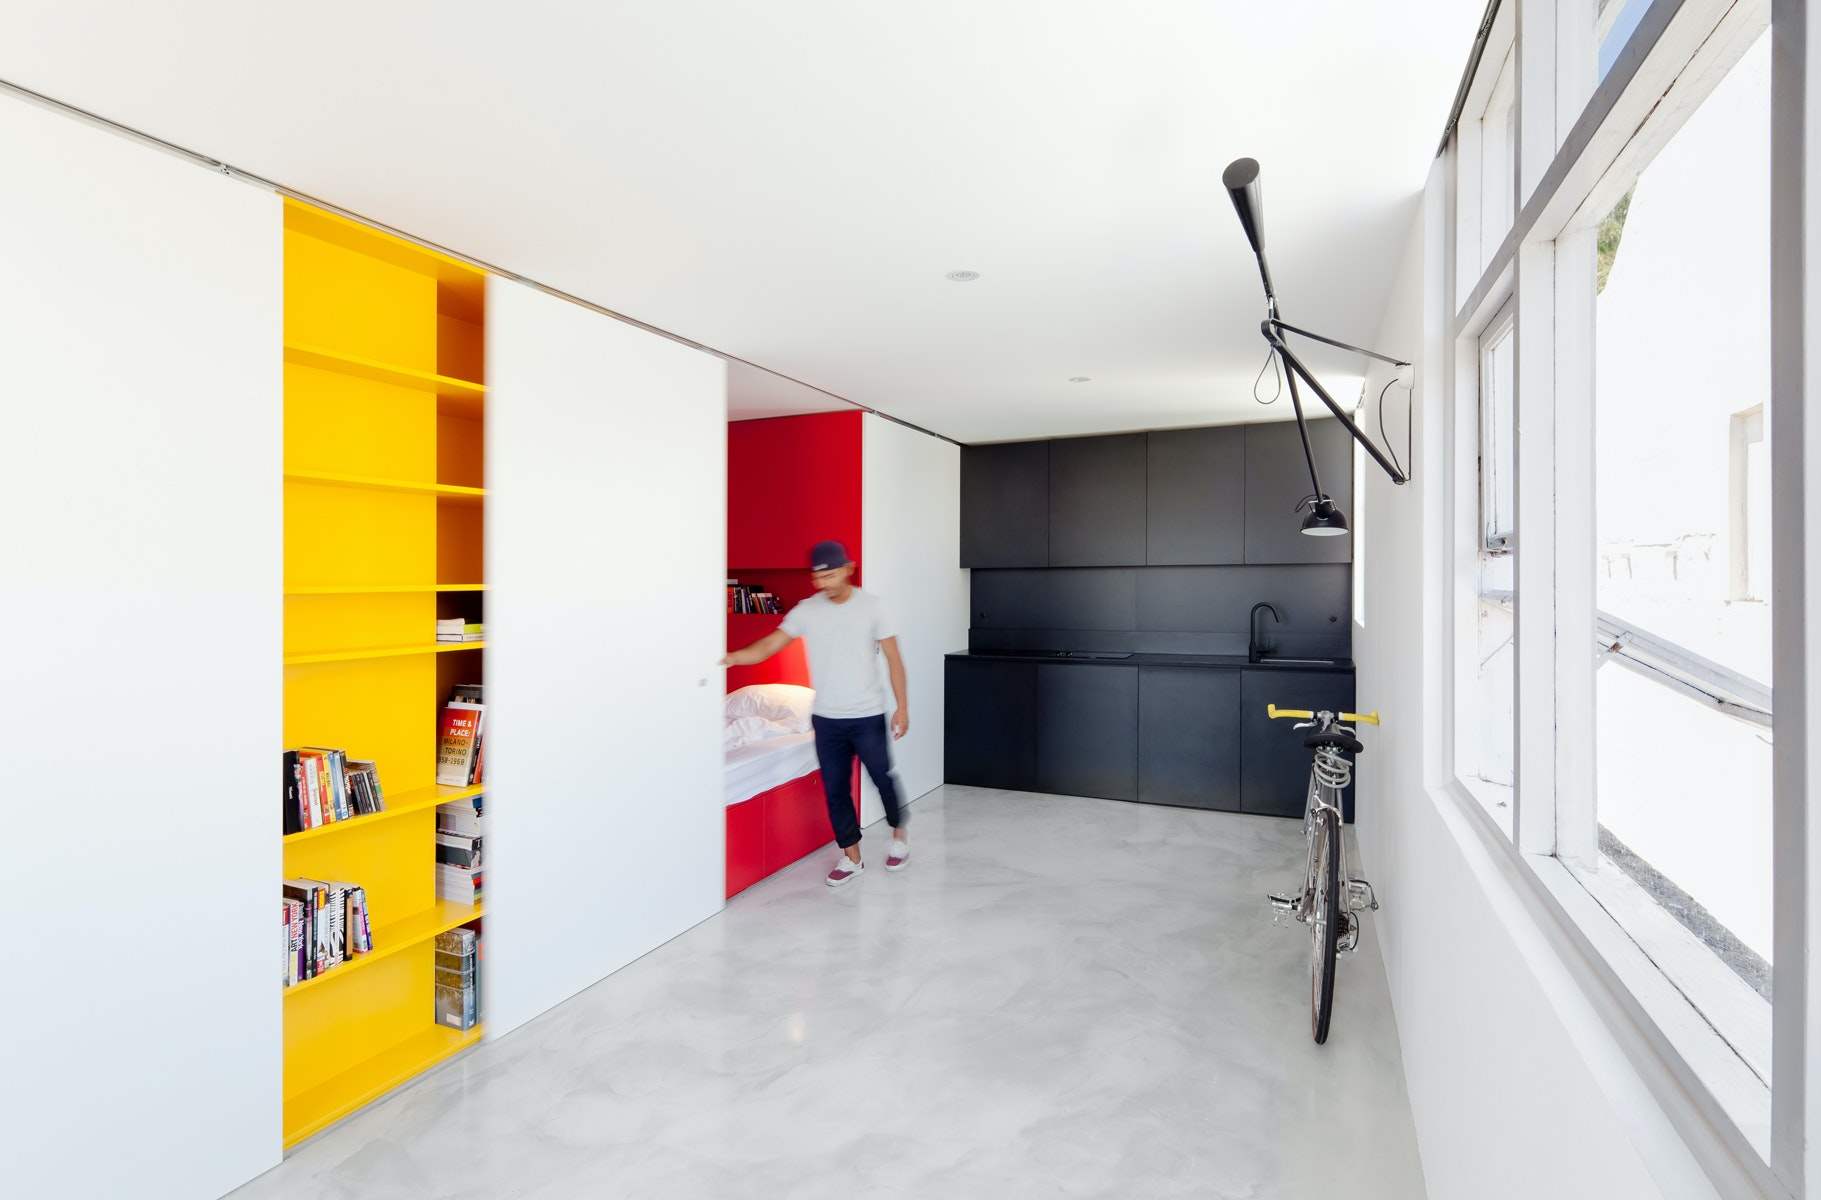 7 Adaptable Designs For Storage In Small Spaces